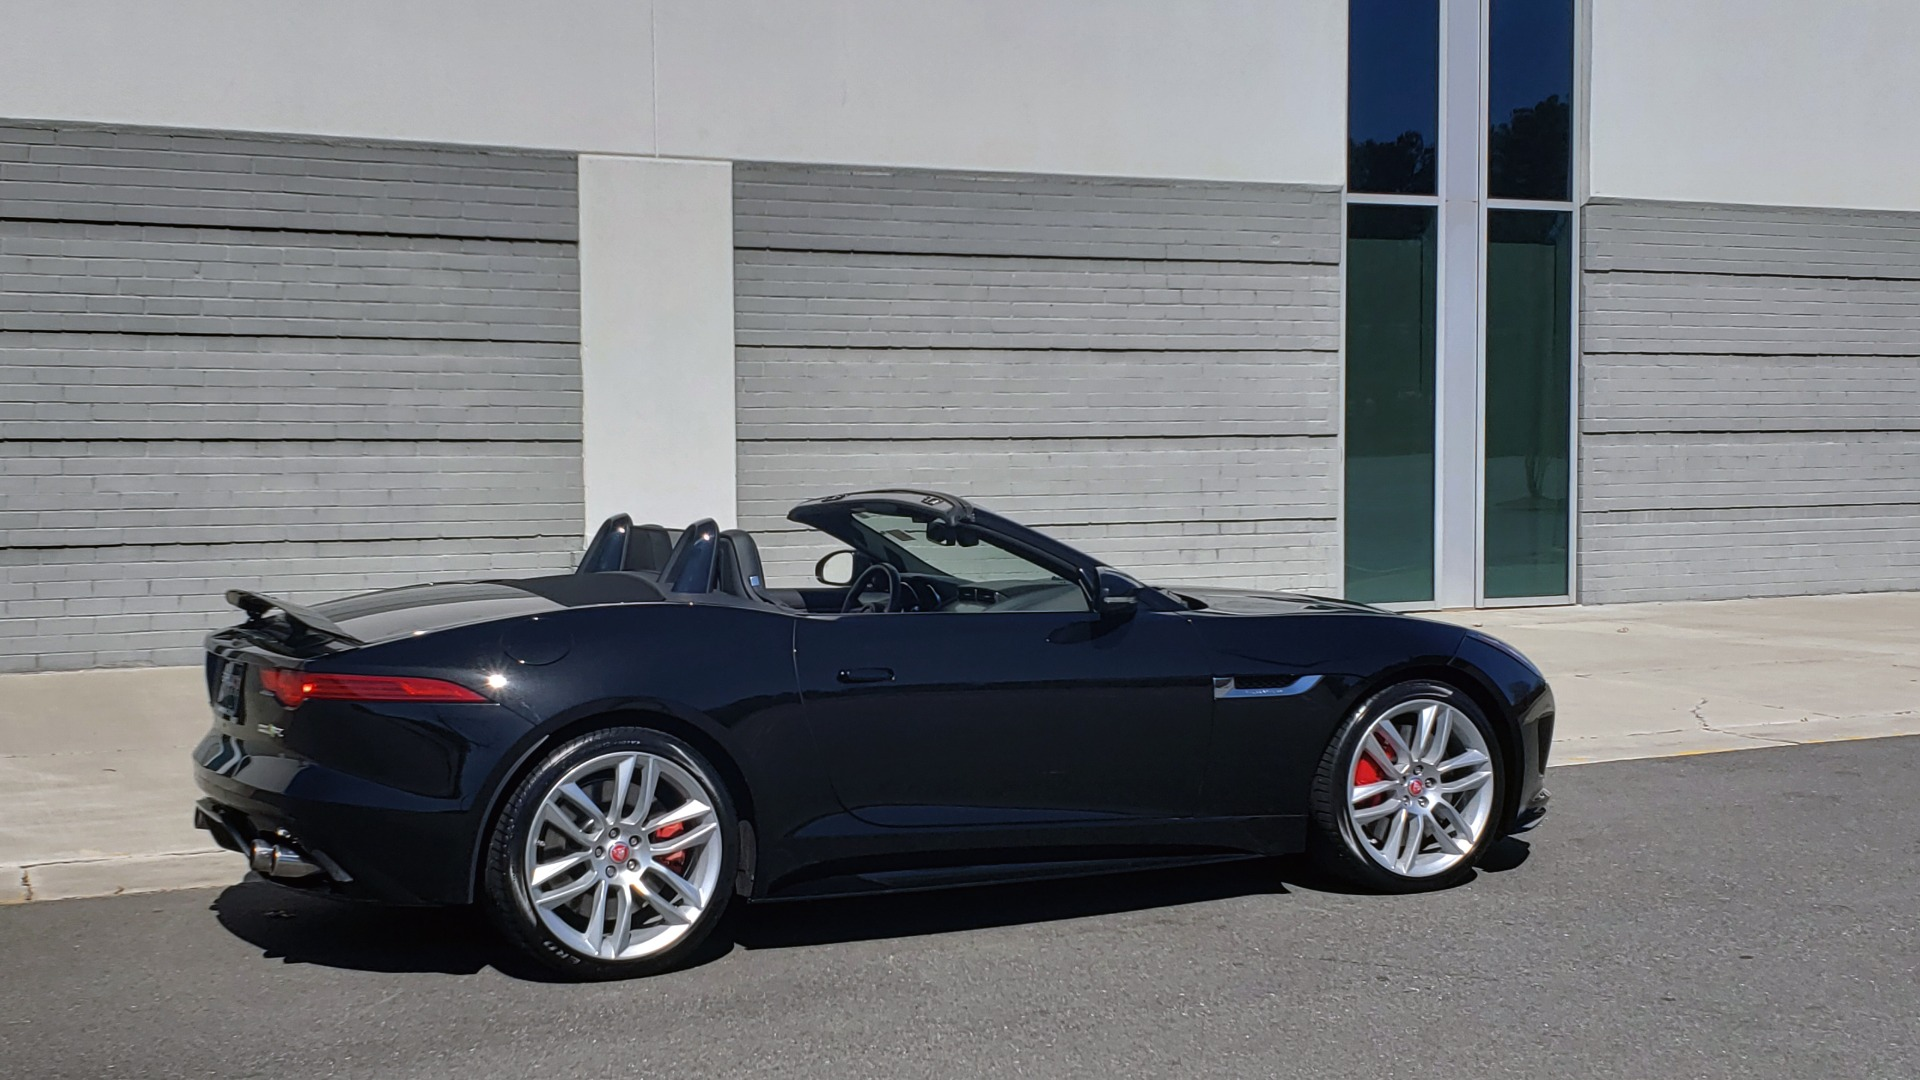 Used 2016 Jaguar F-TYPE R CONVERTIBLE / SC 5.0L 550HP / VISION PACK 3 / BSM / REARVIEW for sale $63,000 at Formula Imports in Charlotte NC 28227 12